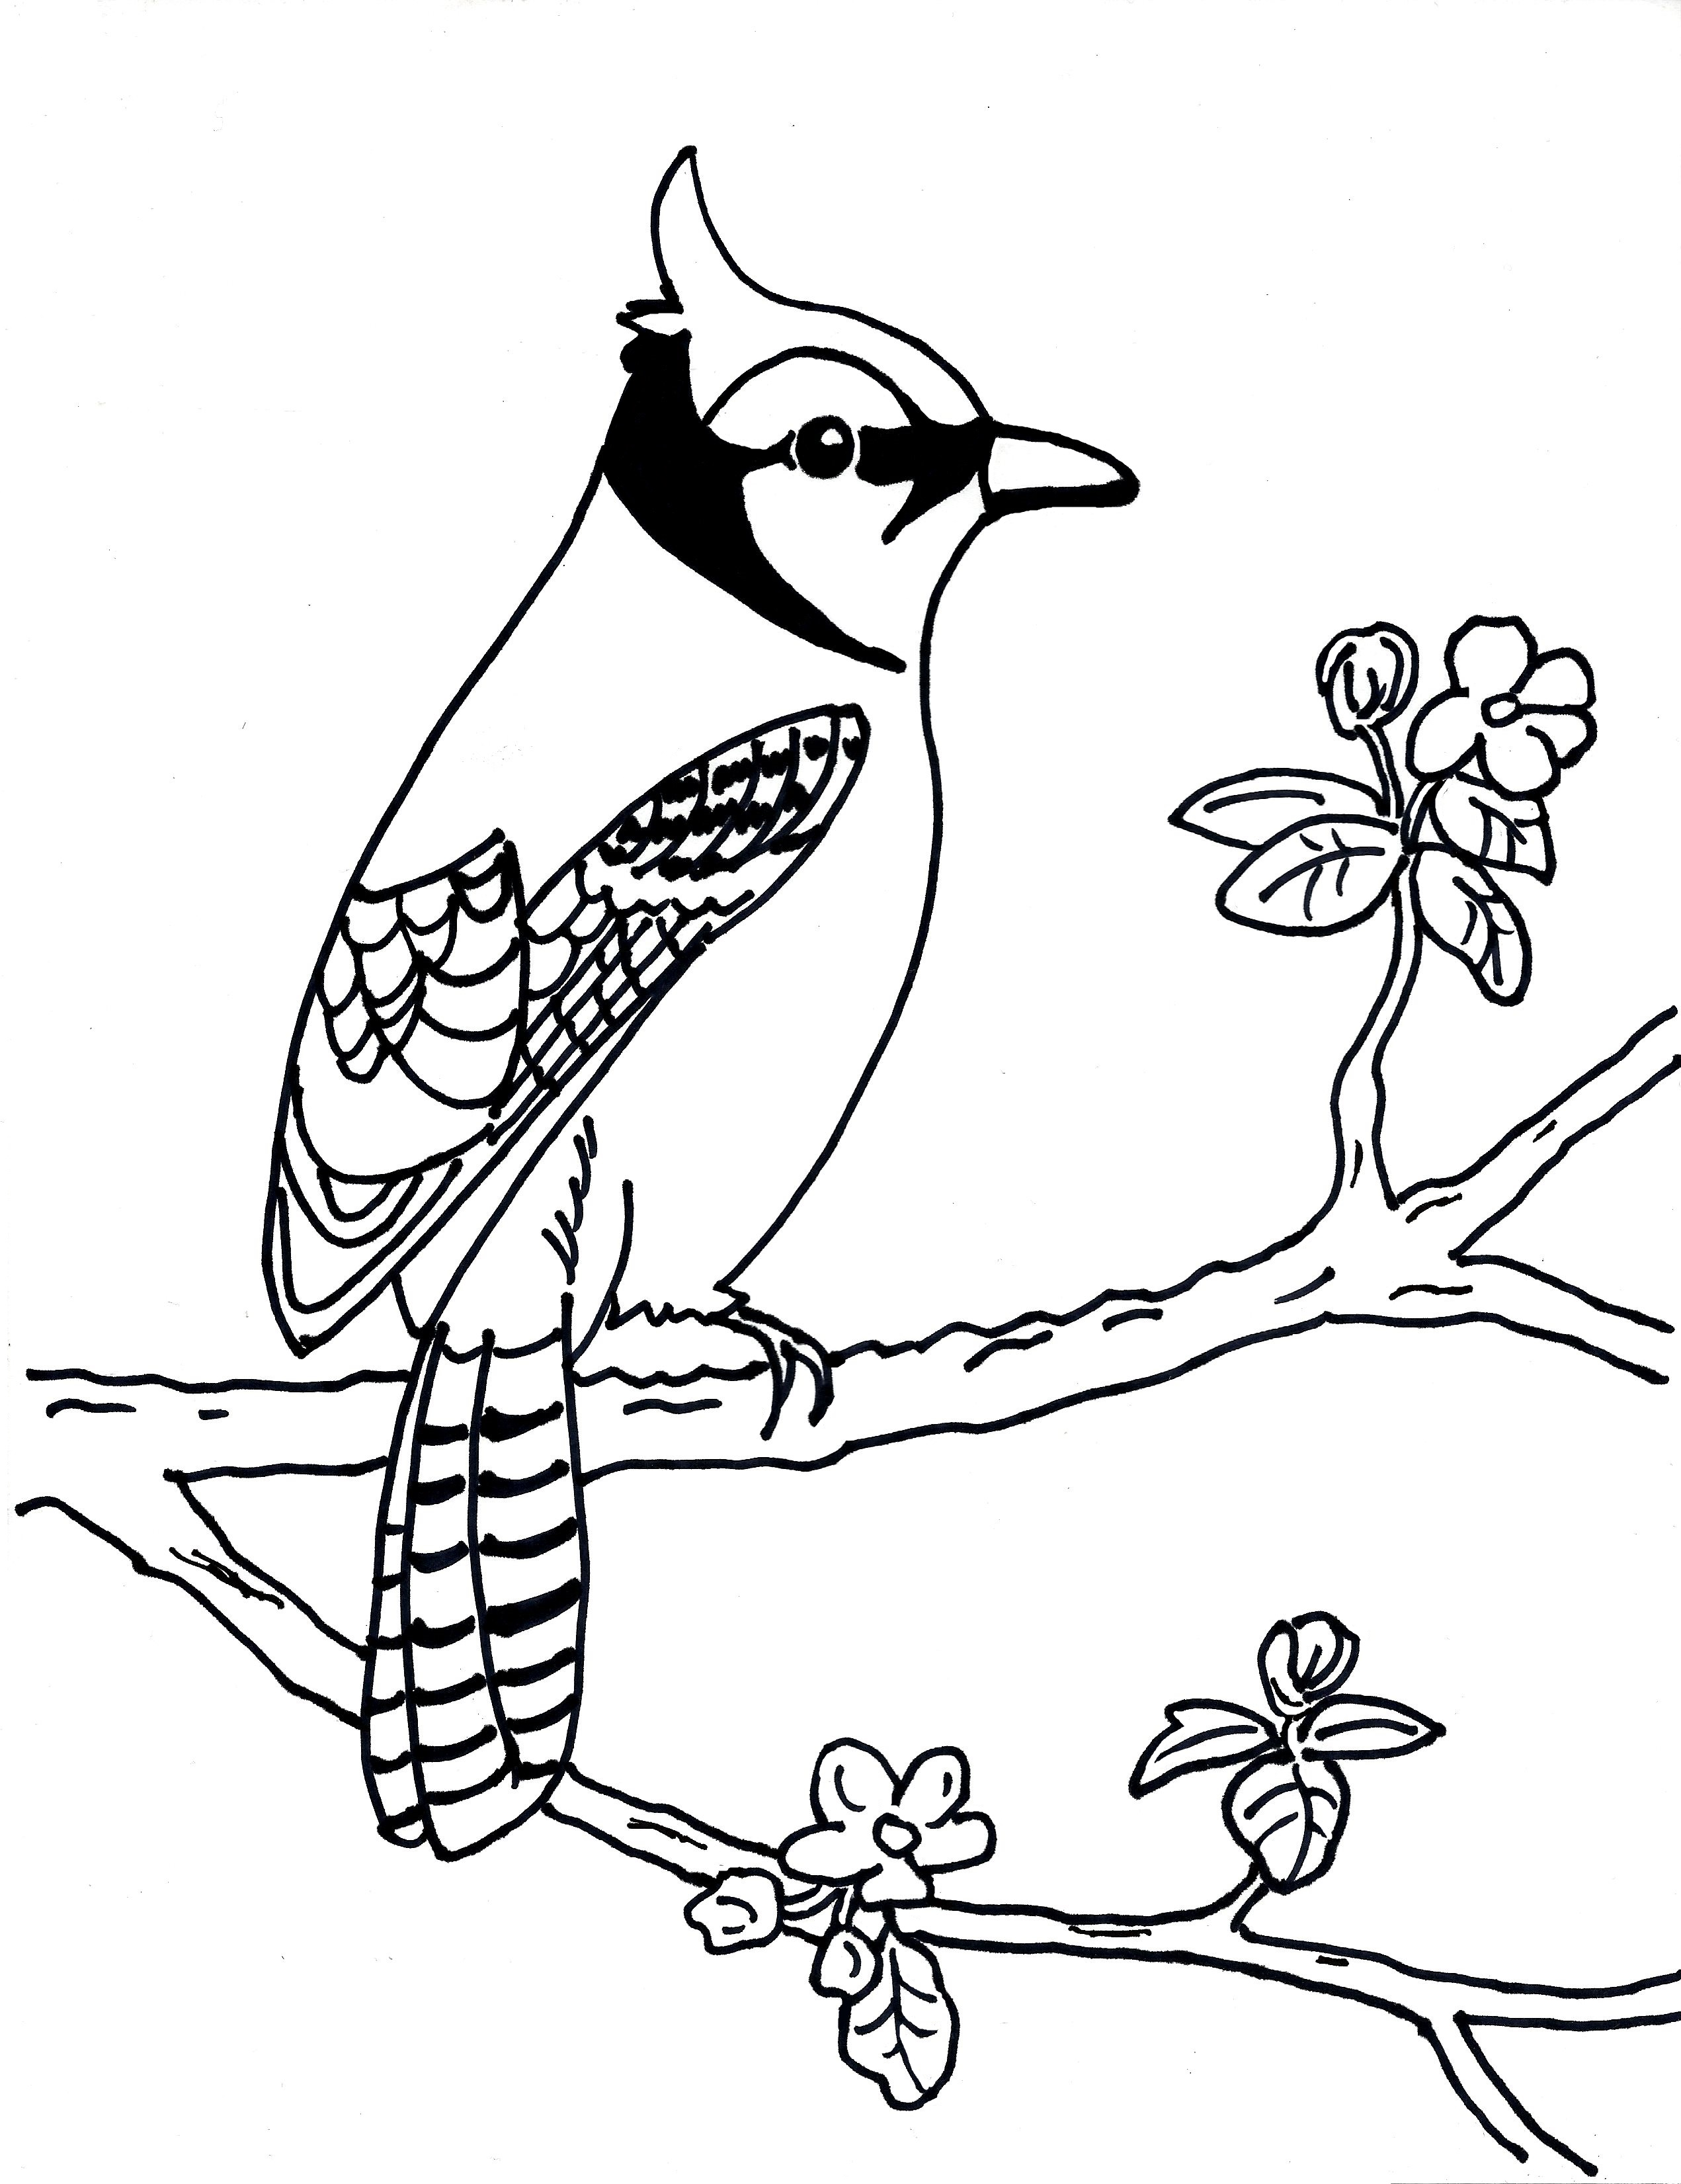 bluejay coloring pages - photo#18